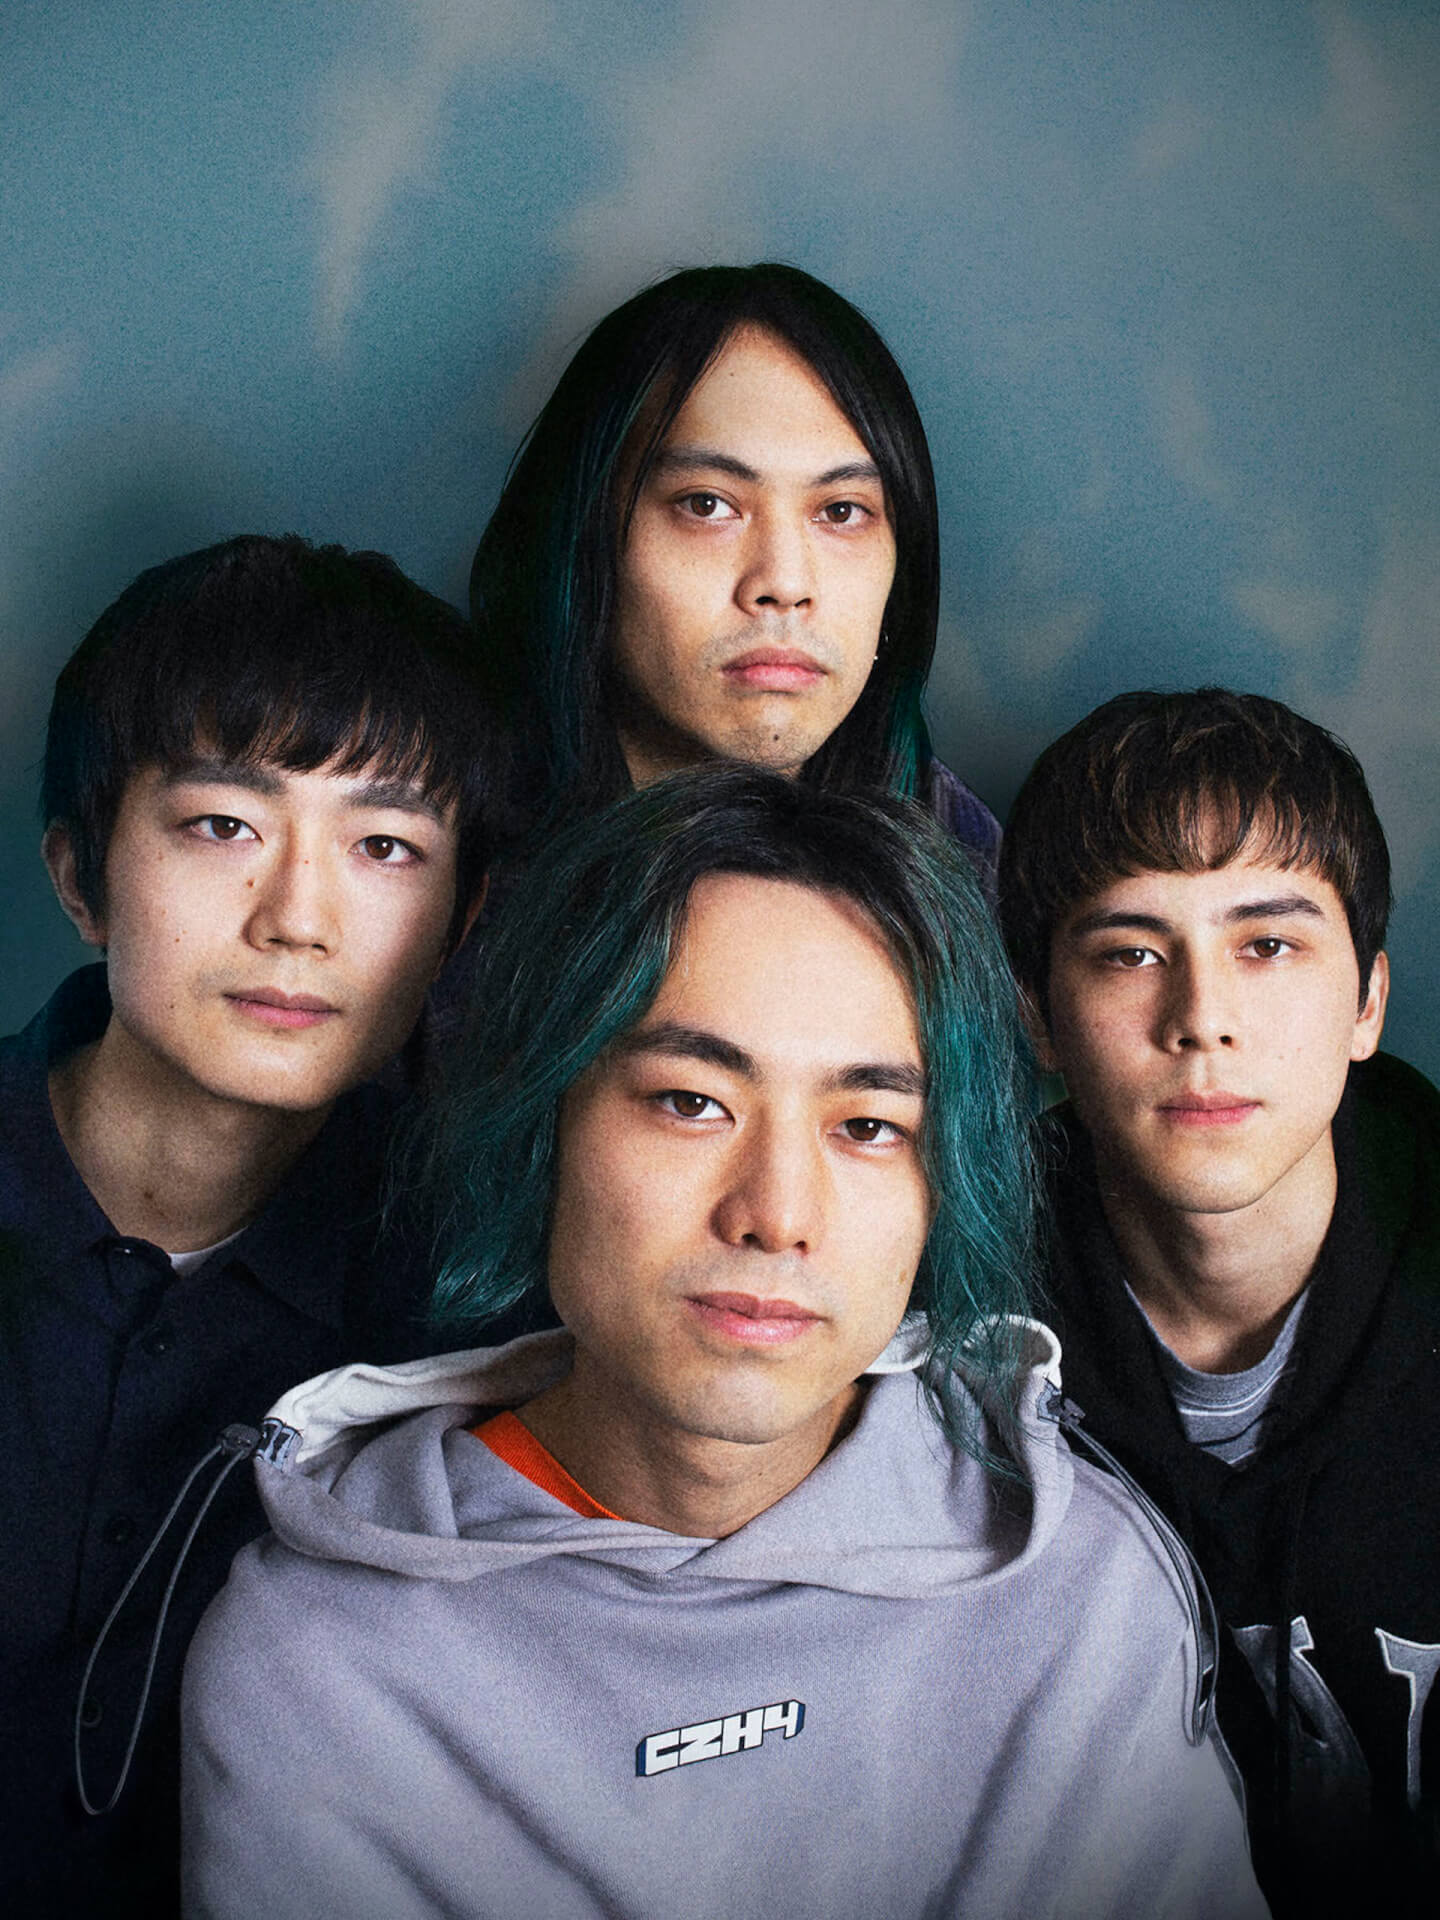 Spincoaster主催のライブイベント<SPIN.DISCOVERY>が開催決定!田我流、釈迦坊主、MonyHorse、DYGLなどが参加 music210623_spindiscovery5